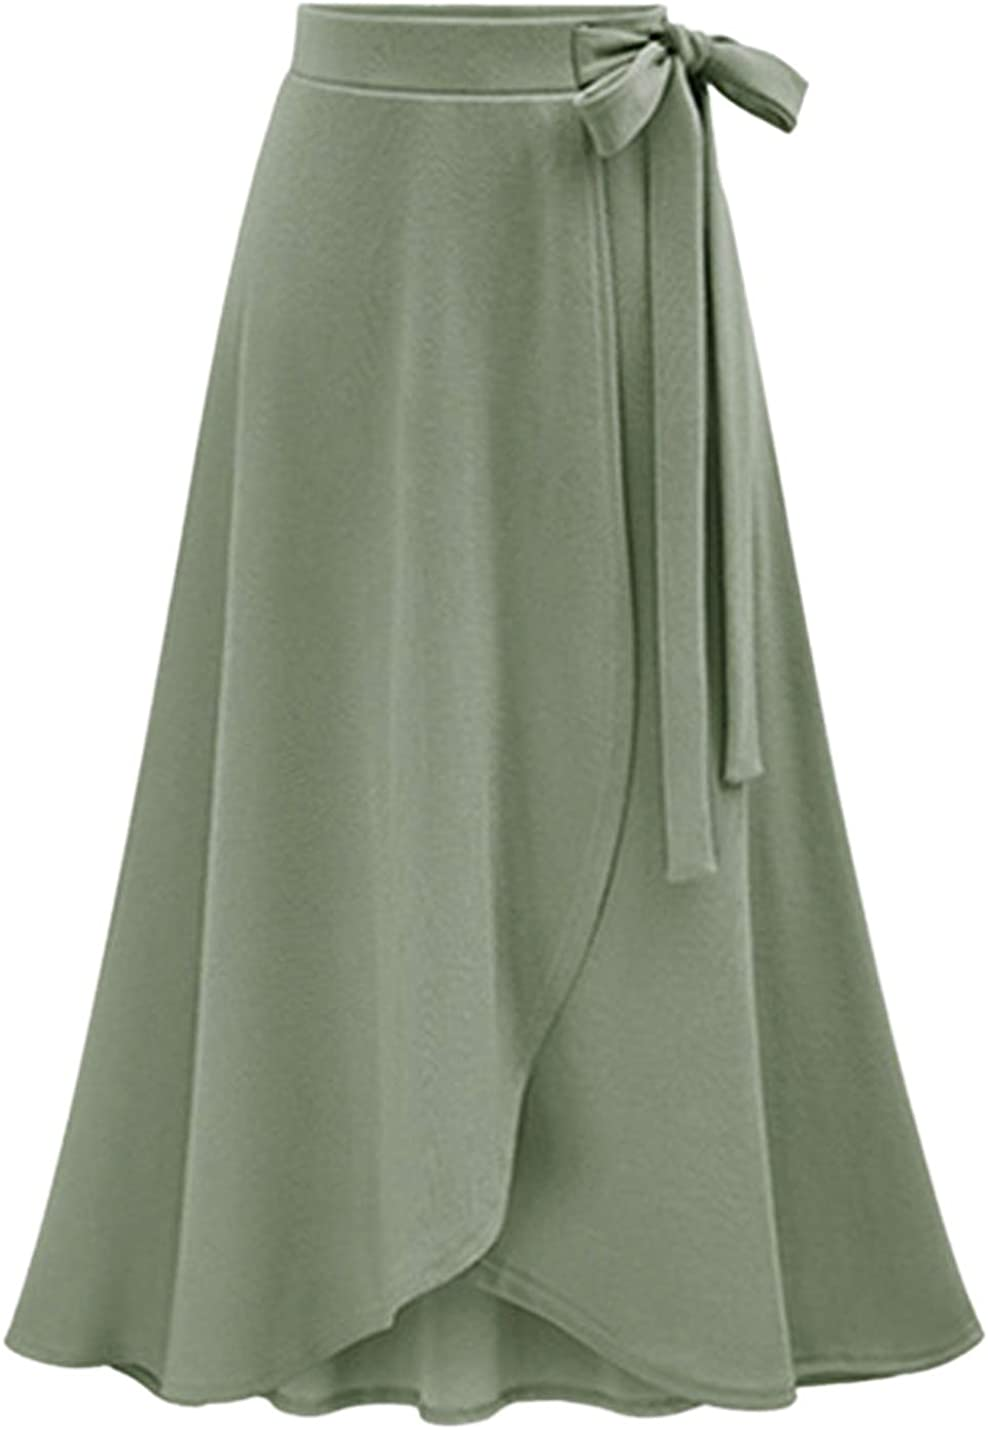 Tanming Women's High Waist Bow Tie Tiered Wrapped Trim Overlap A Line Midi Skirts